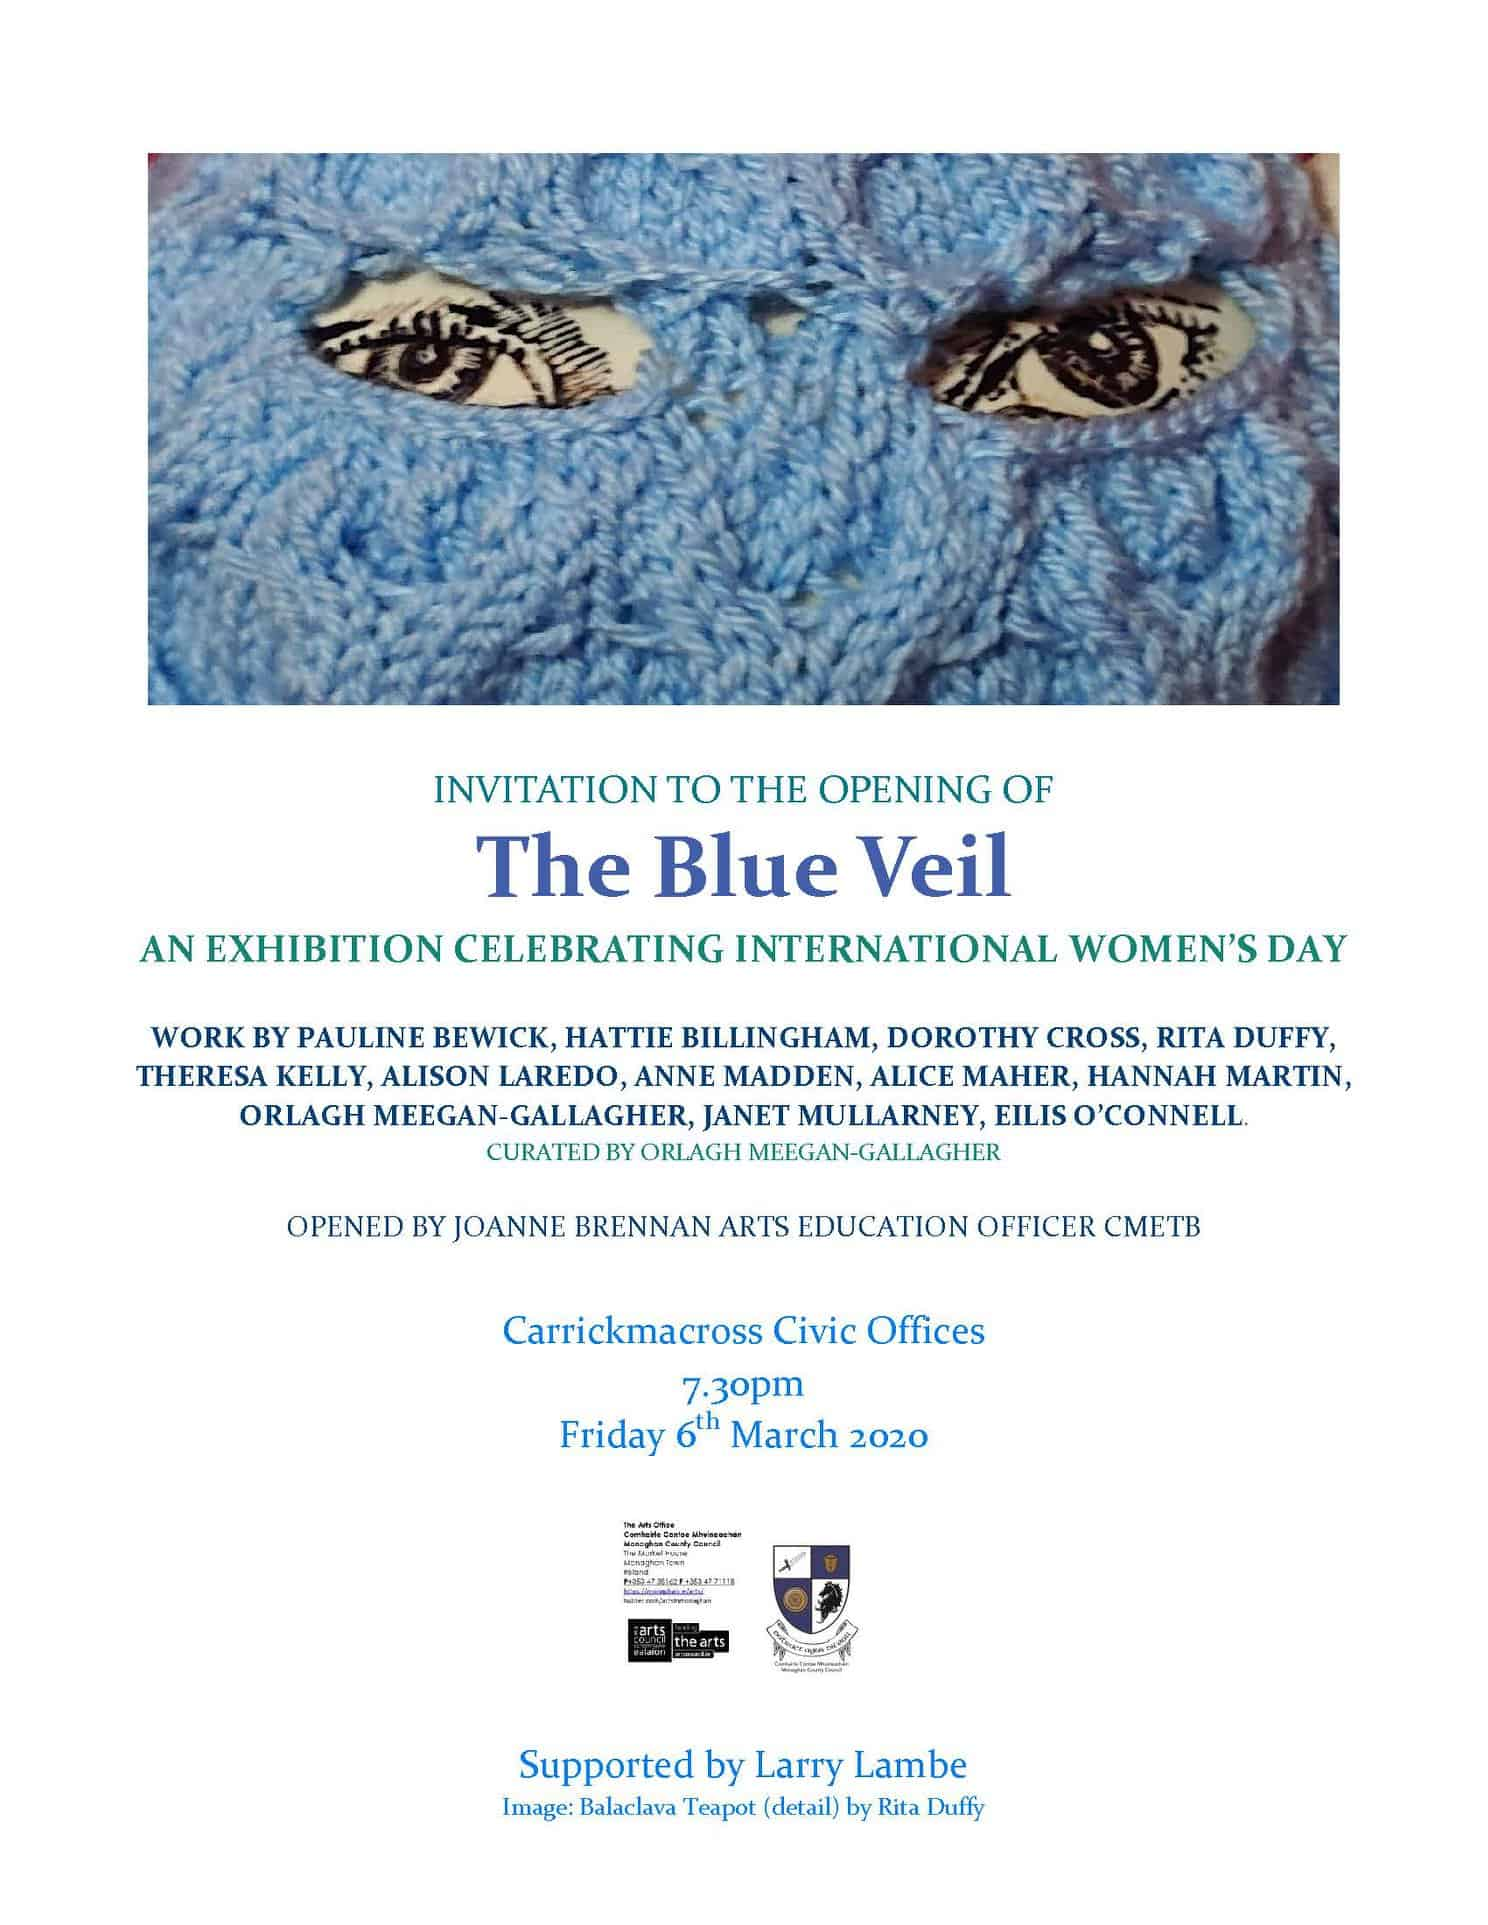 Invitation To The Opening Of The Blue Veil: An Exhibition Celebrating International Women's Day